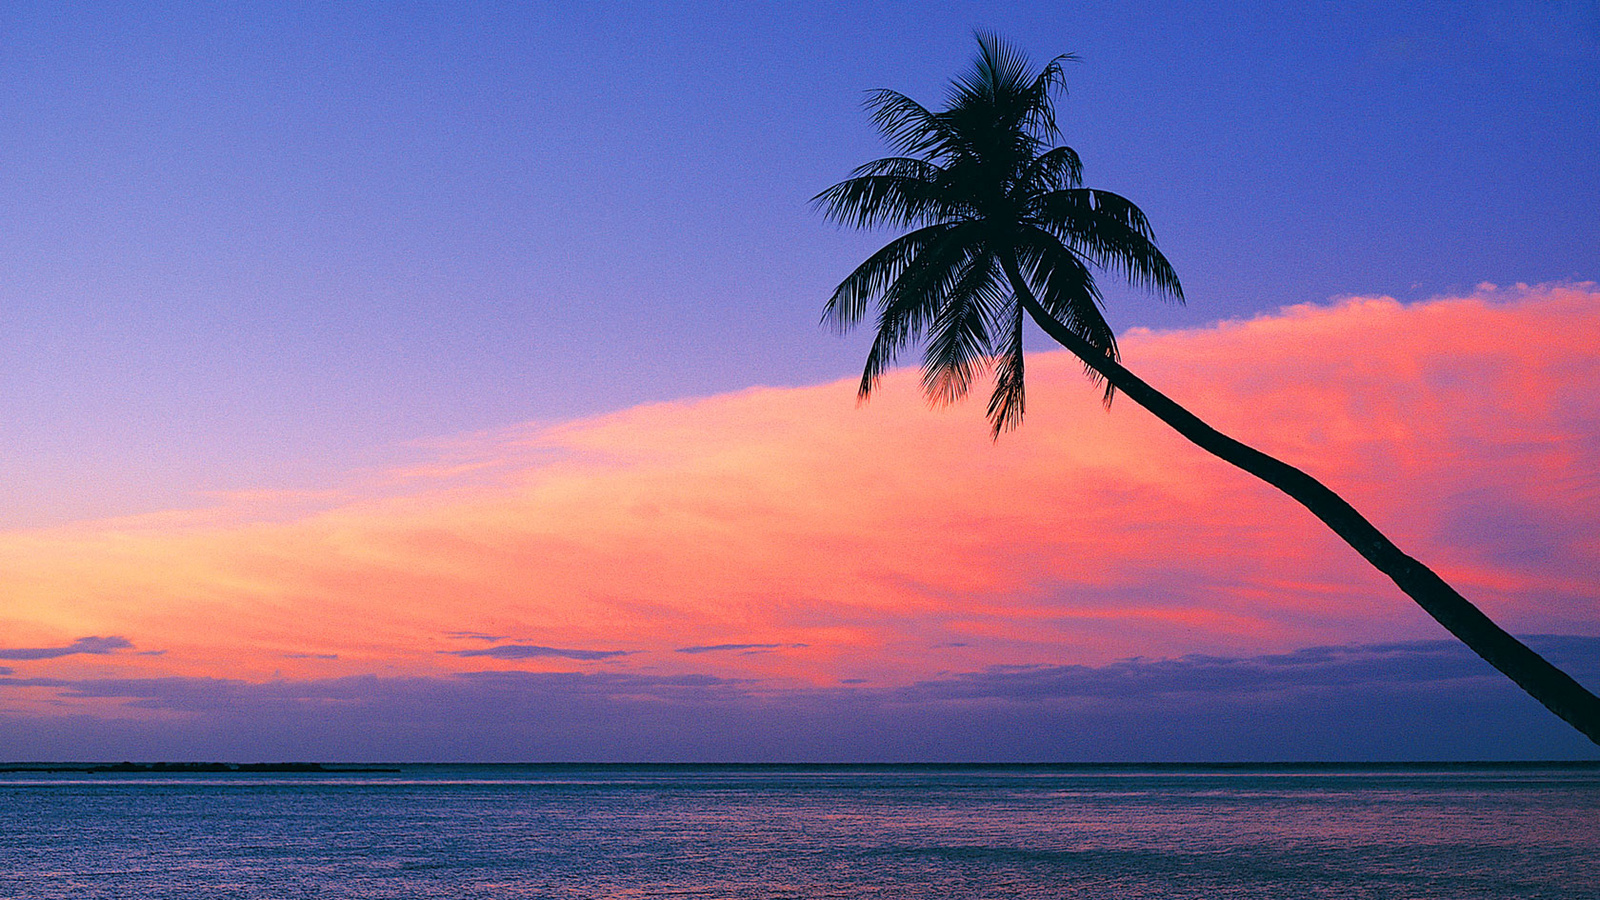 Simple Wallpaper Macbook Sunset - look-at-the-pink-sunset-from-the-beach-wallpaper-1600x900-172  2018_51875.jpg